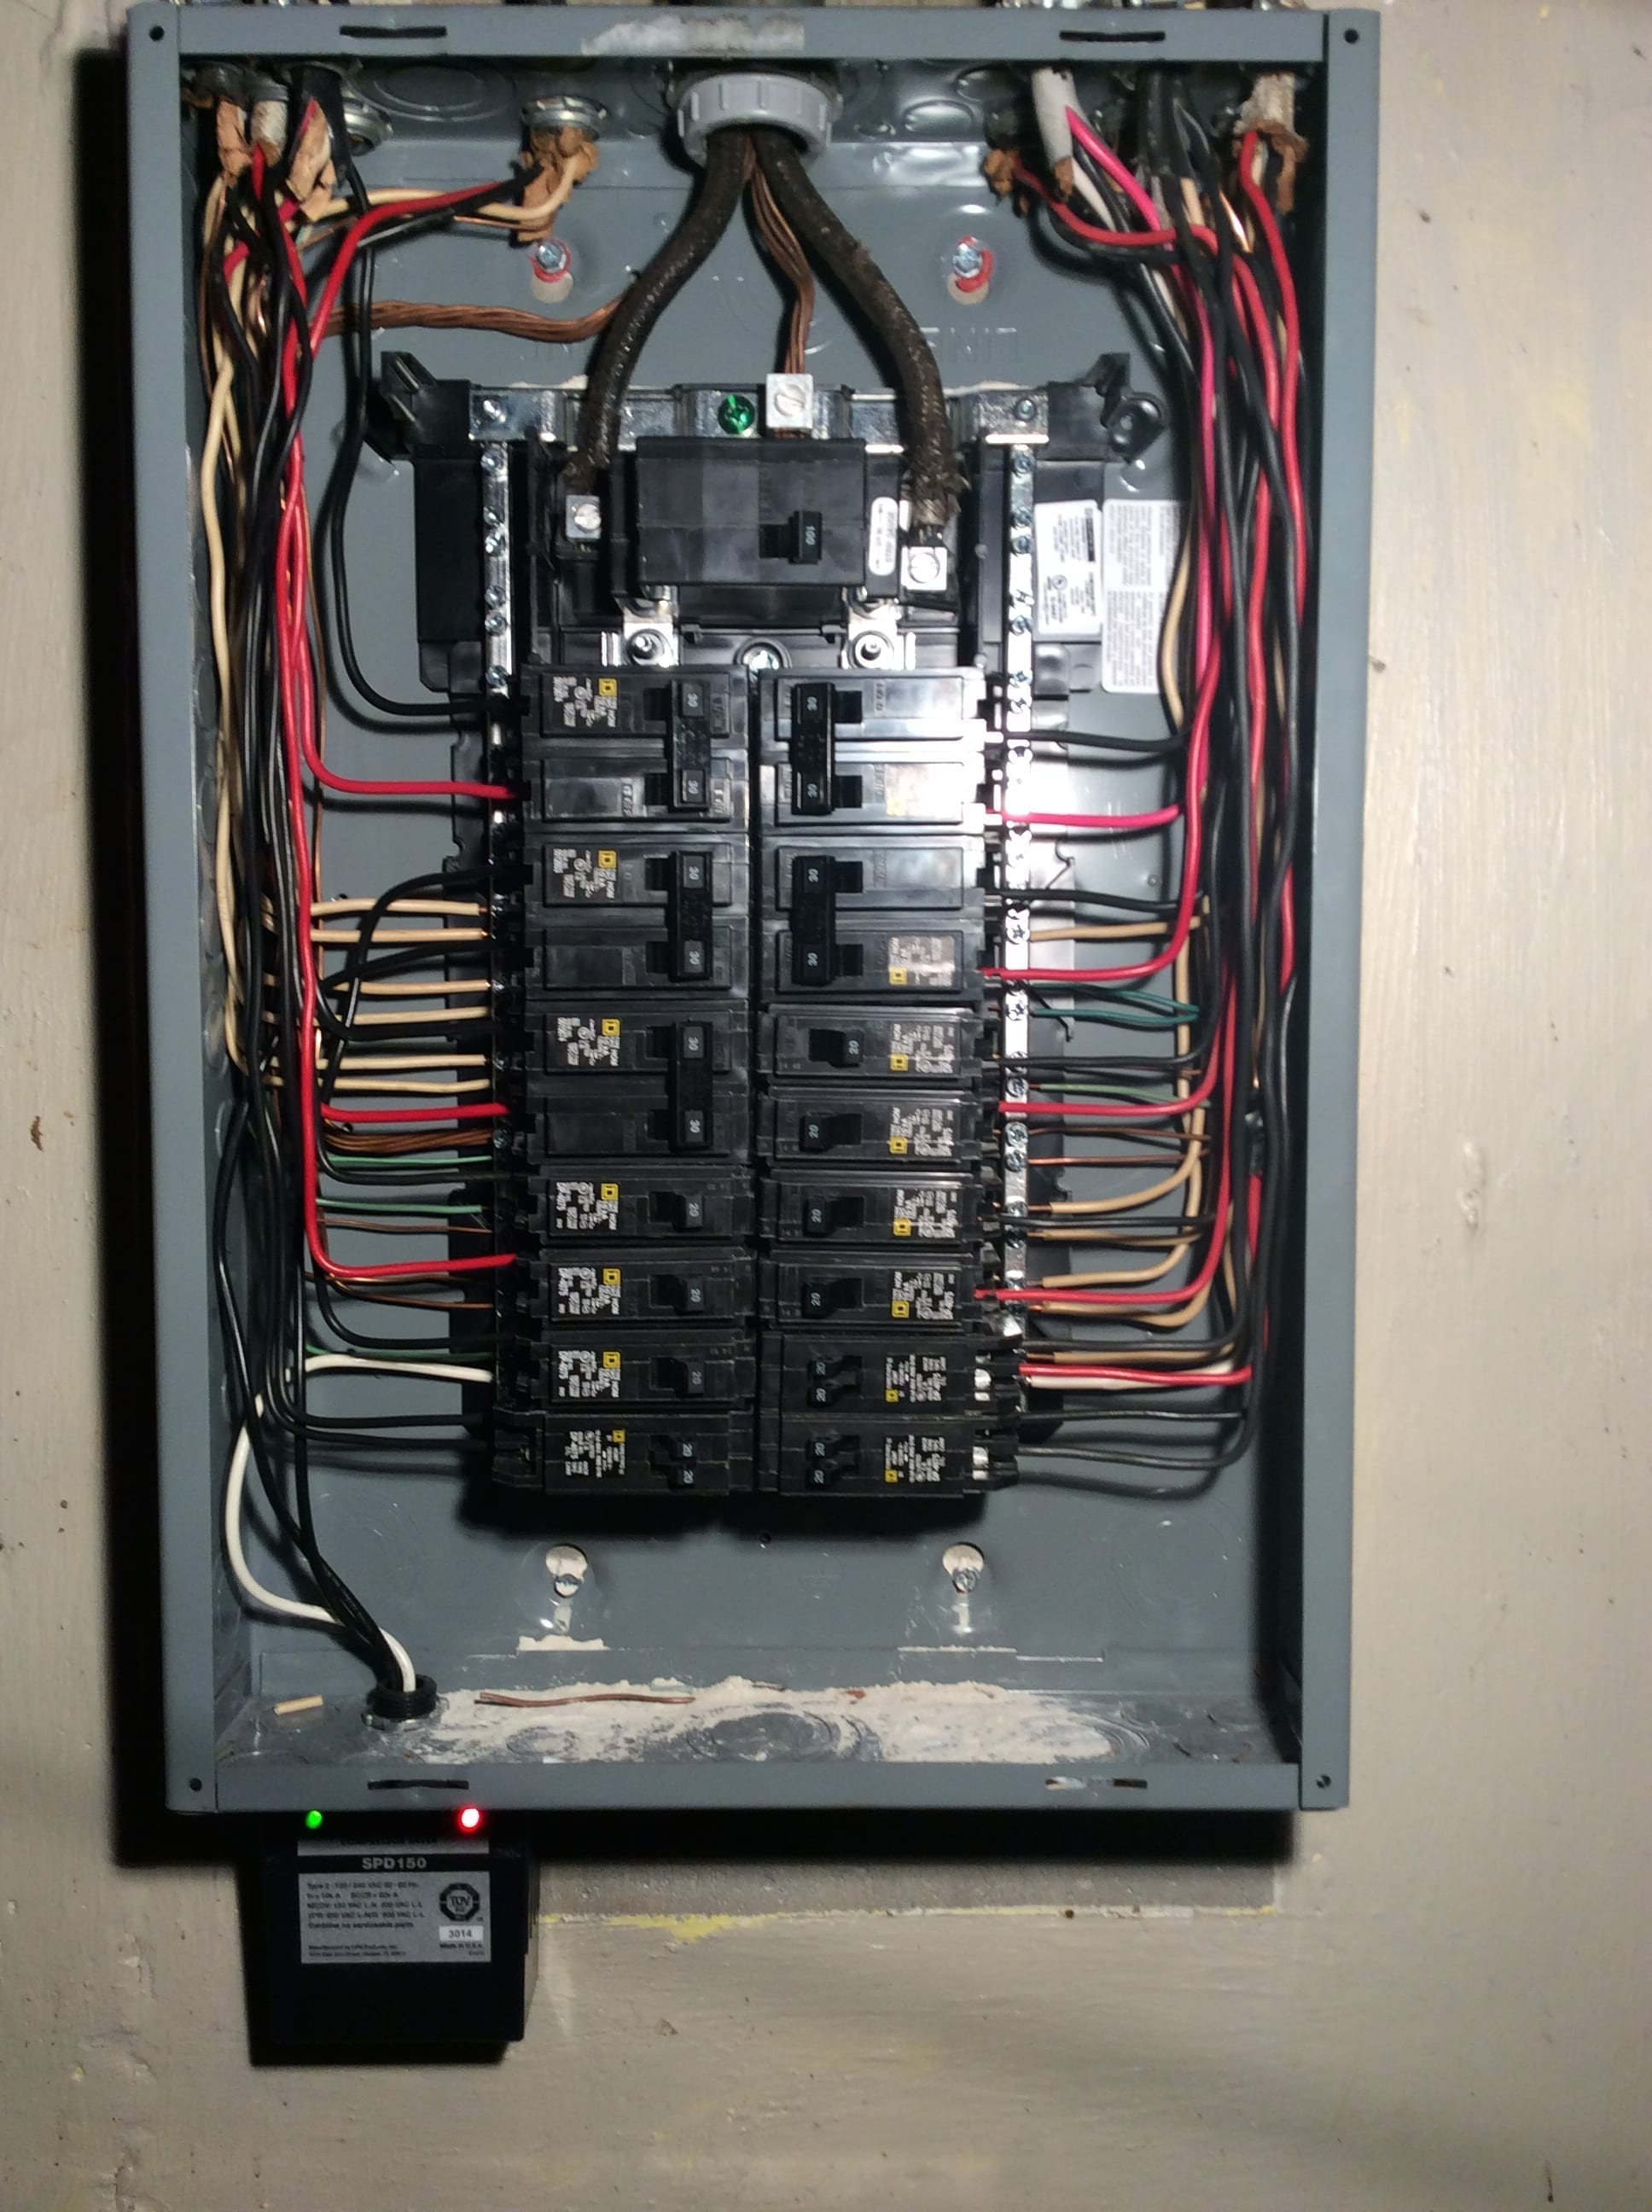 Electrical 101 What You Need To Know Keep Your Family Safe Home Wiring Whether Have An Older With A Fuse Box Or Newer Circuit Breakers If They Are Consistently Malfunctioning Its Sign Of Much Bigger